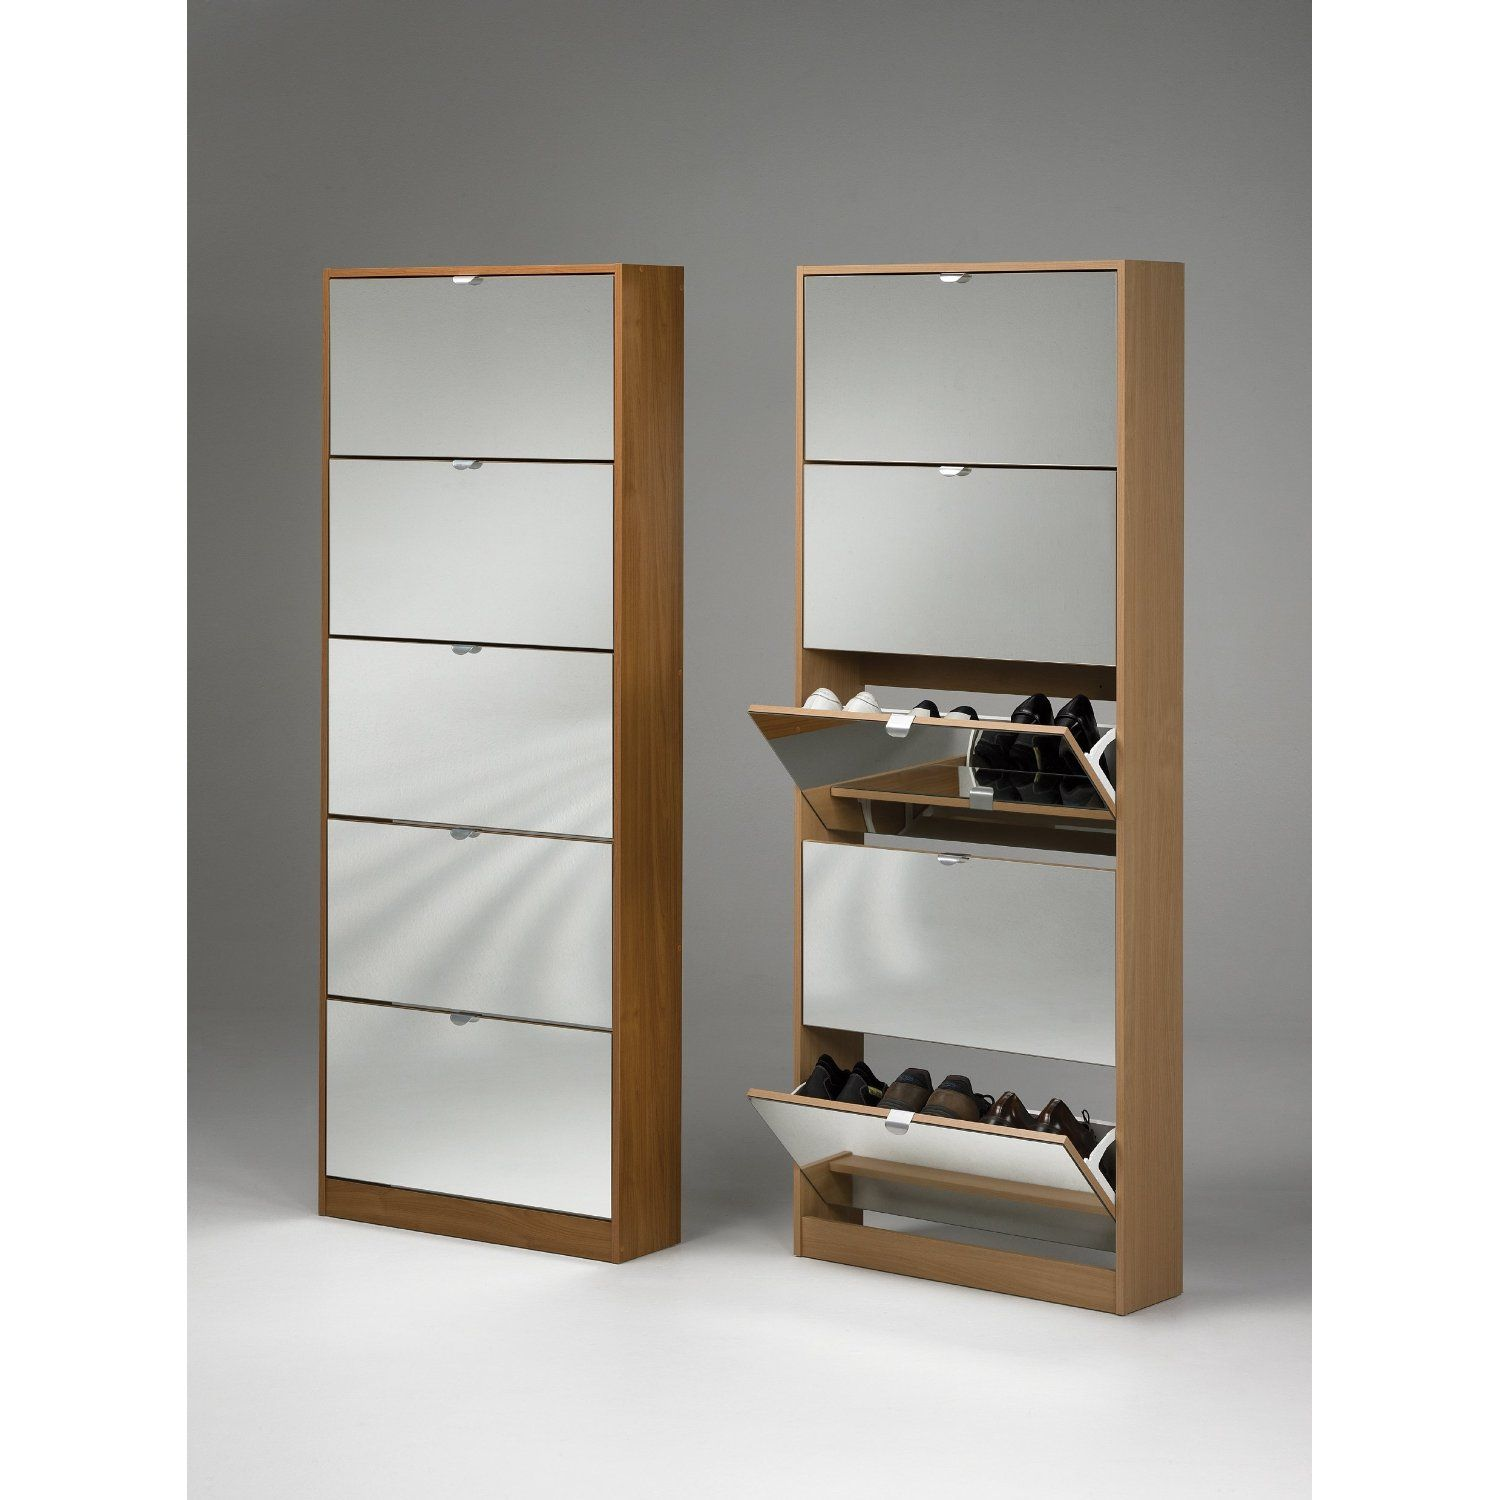 Love this shoe organizer Would solve two problems shoe storage and a mirror Mirror DoorCabinet